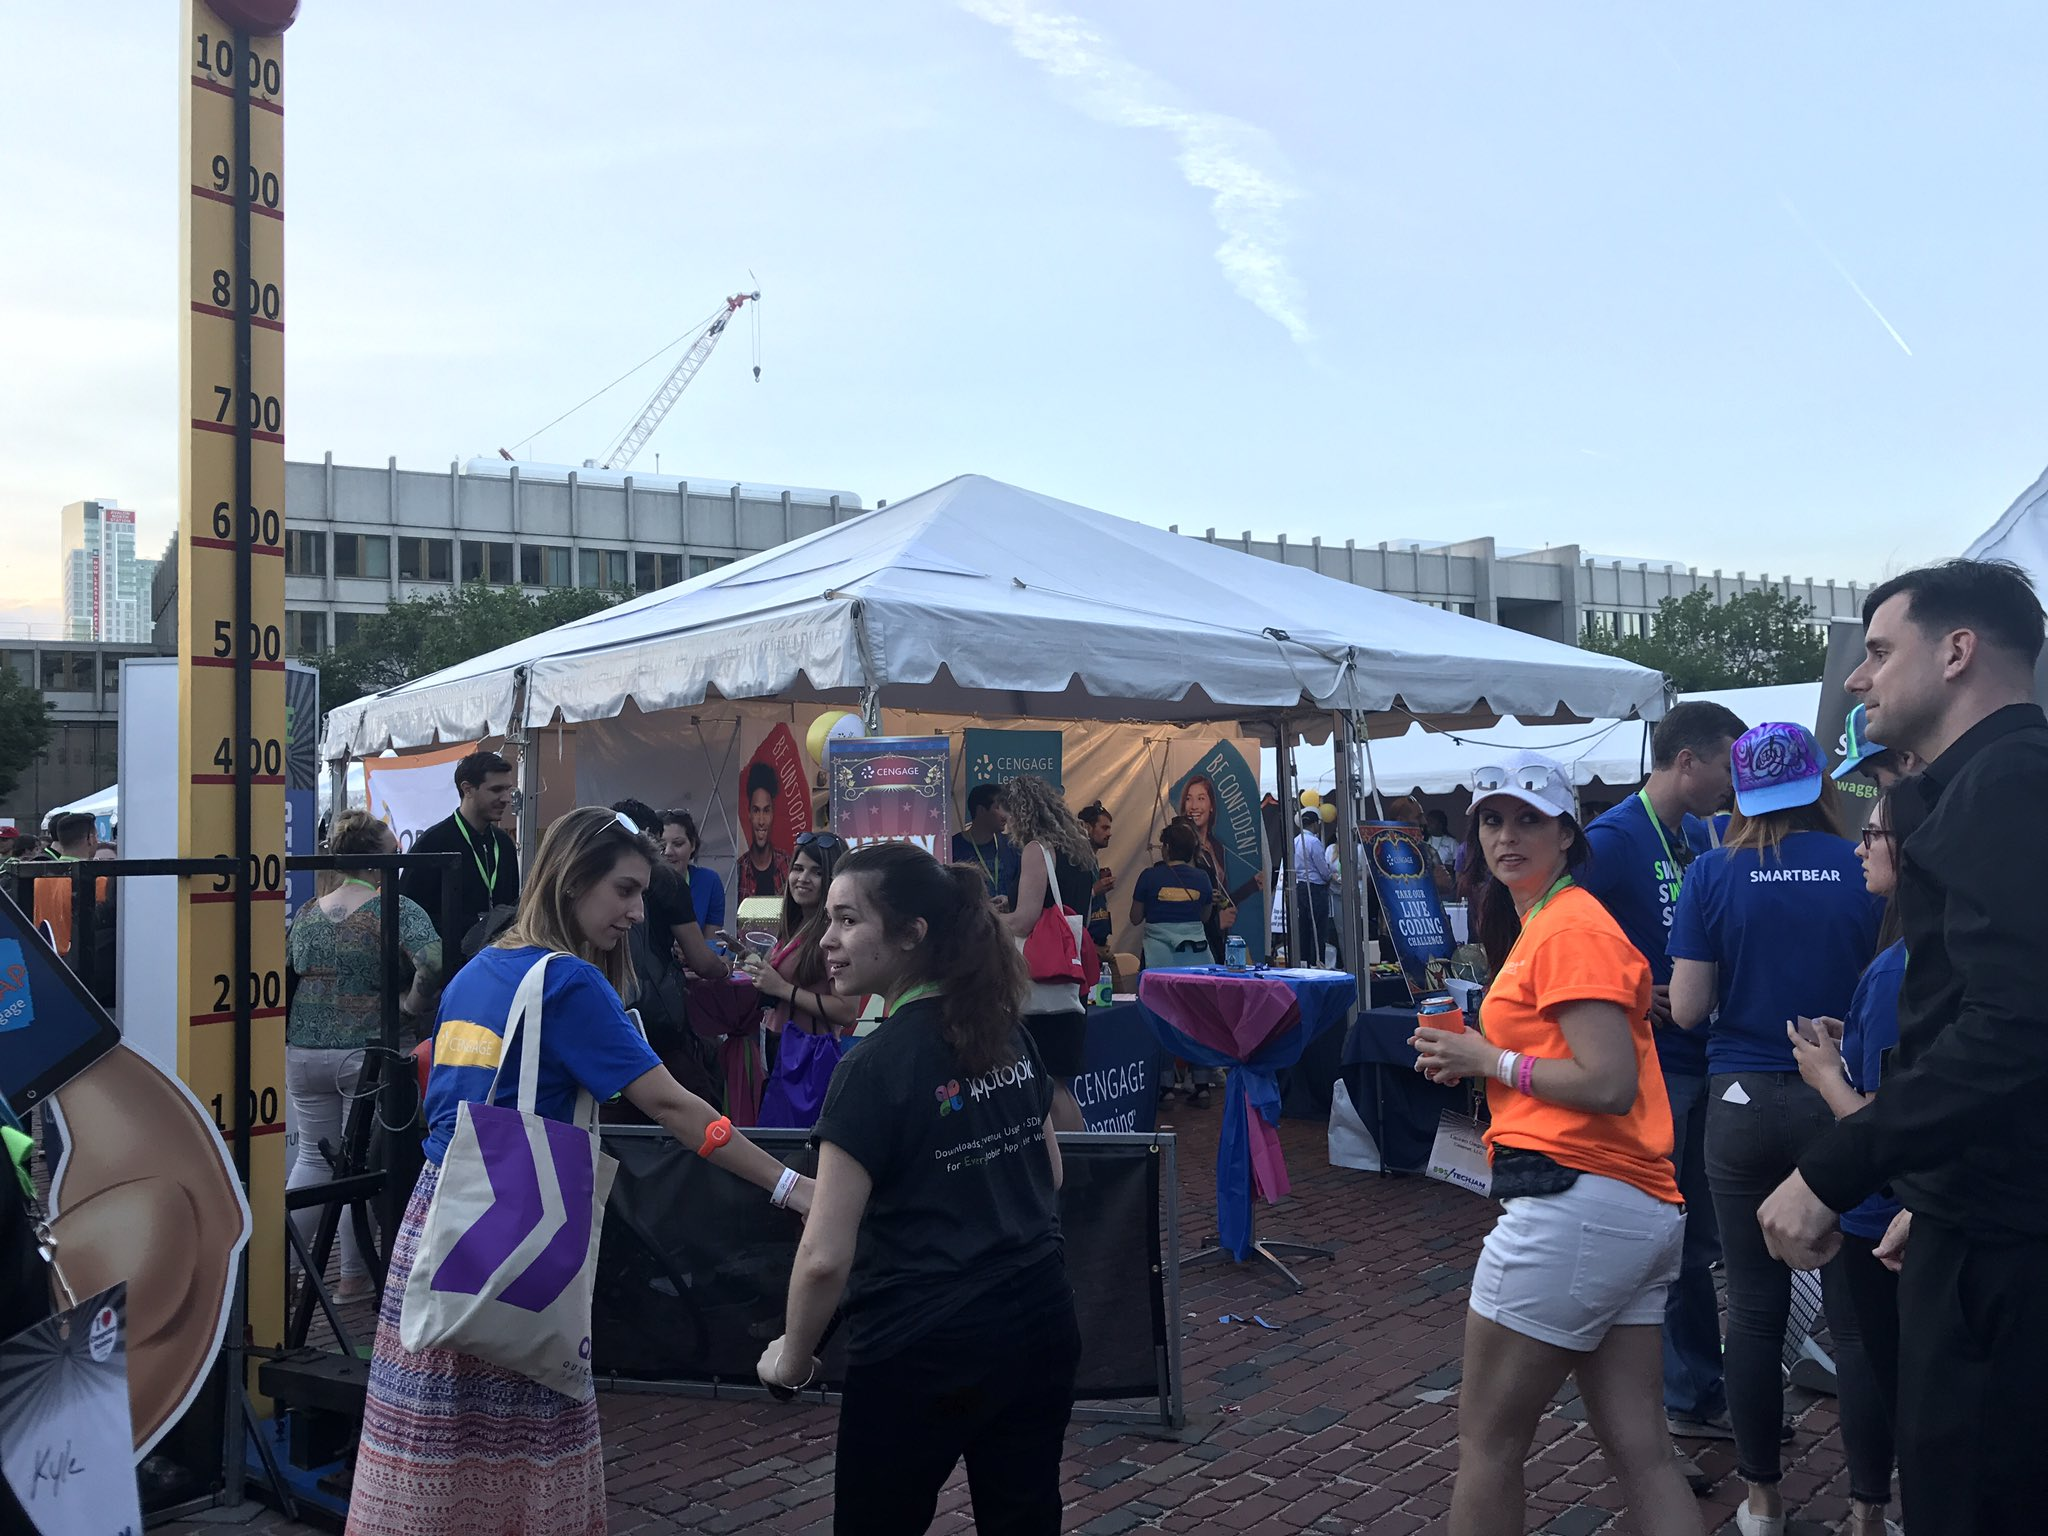 Thanks for everyone who visted us at #BTJ2017.  Excited to meet so many people who want help revolutionize education. https://t.co/hev38rWfPG